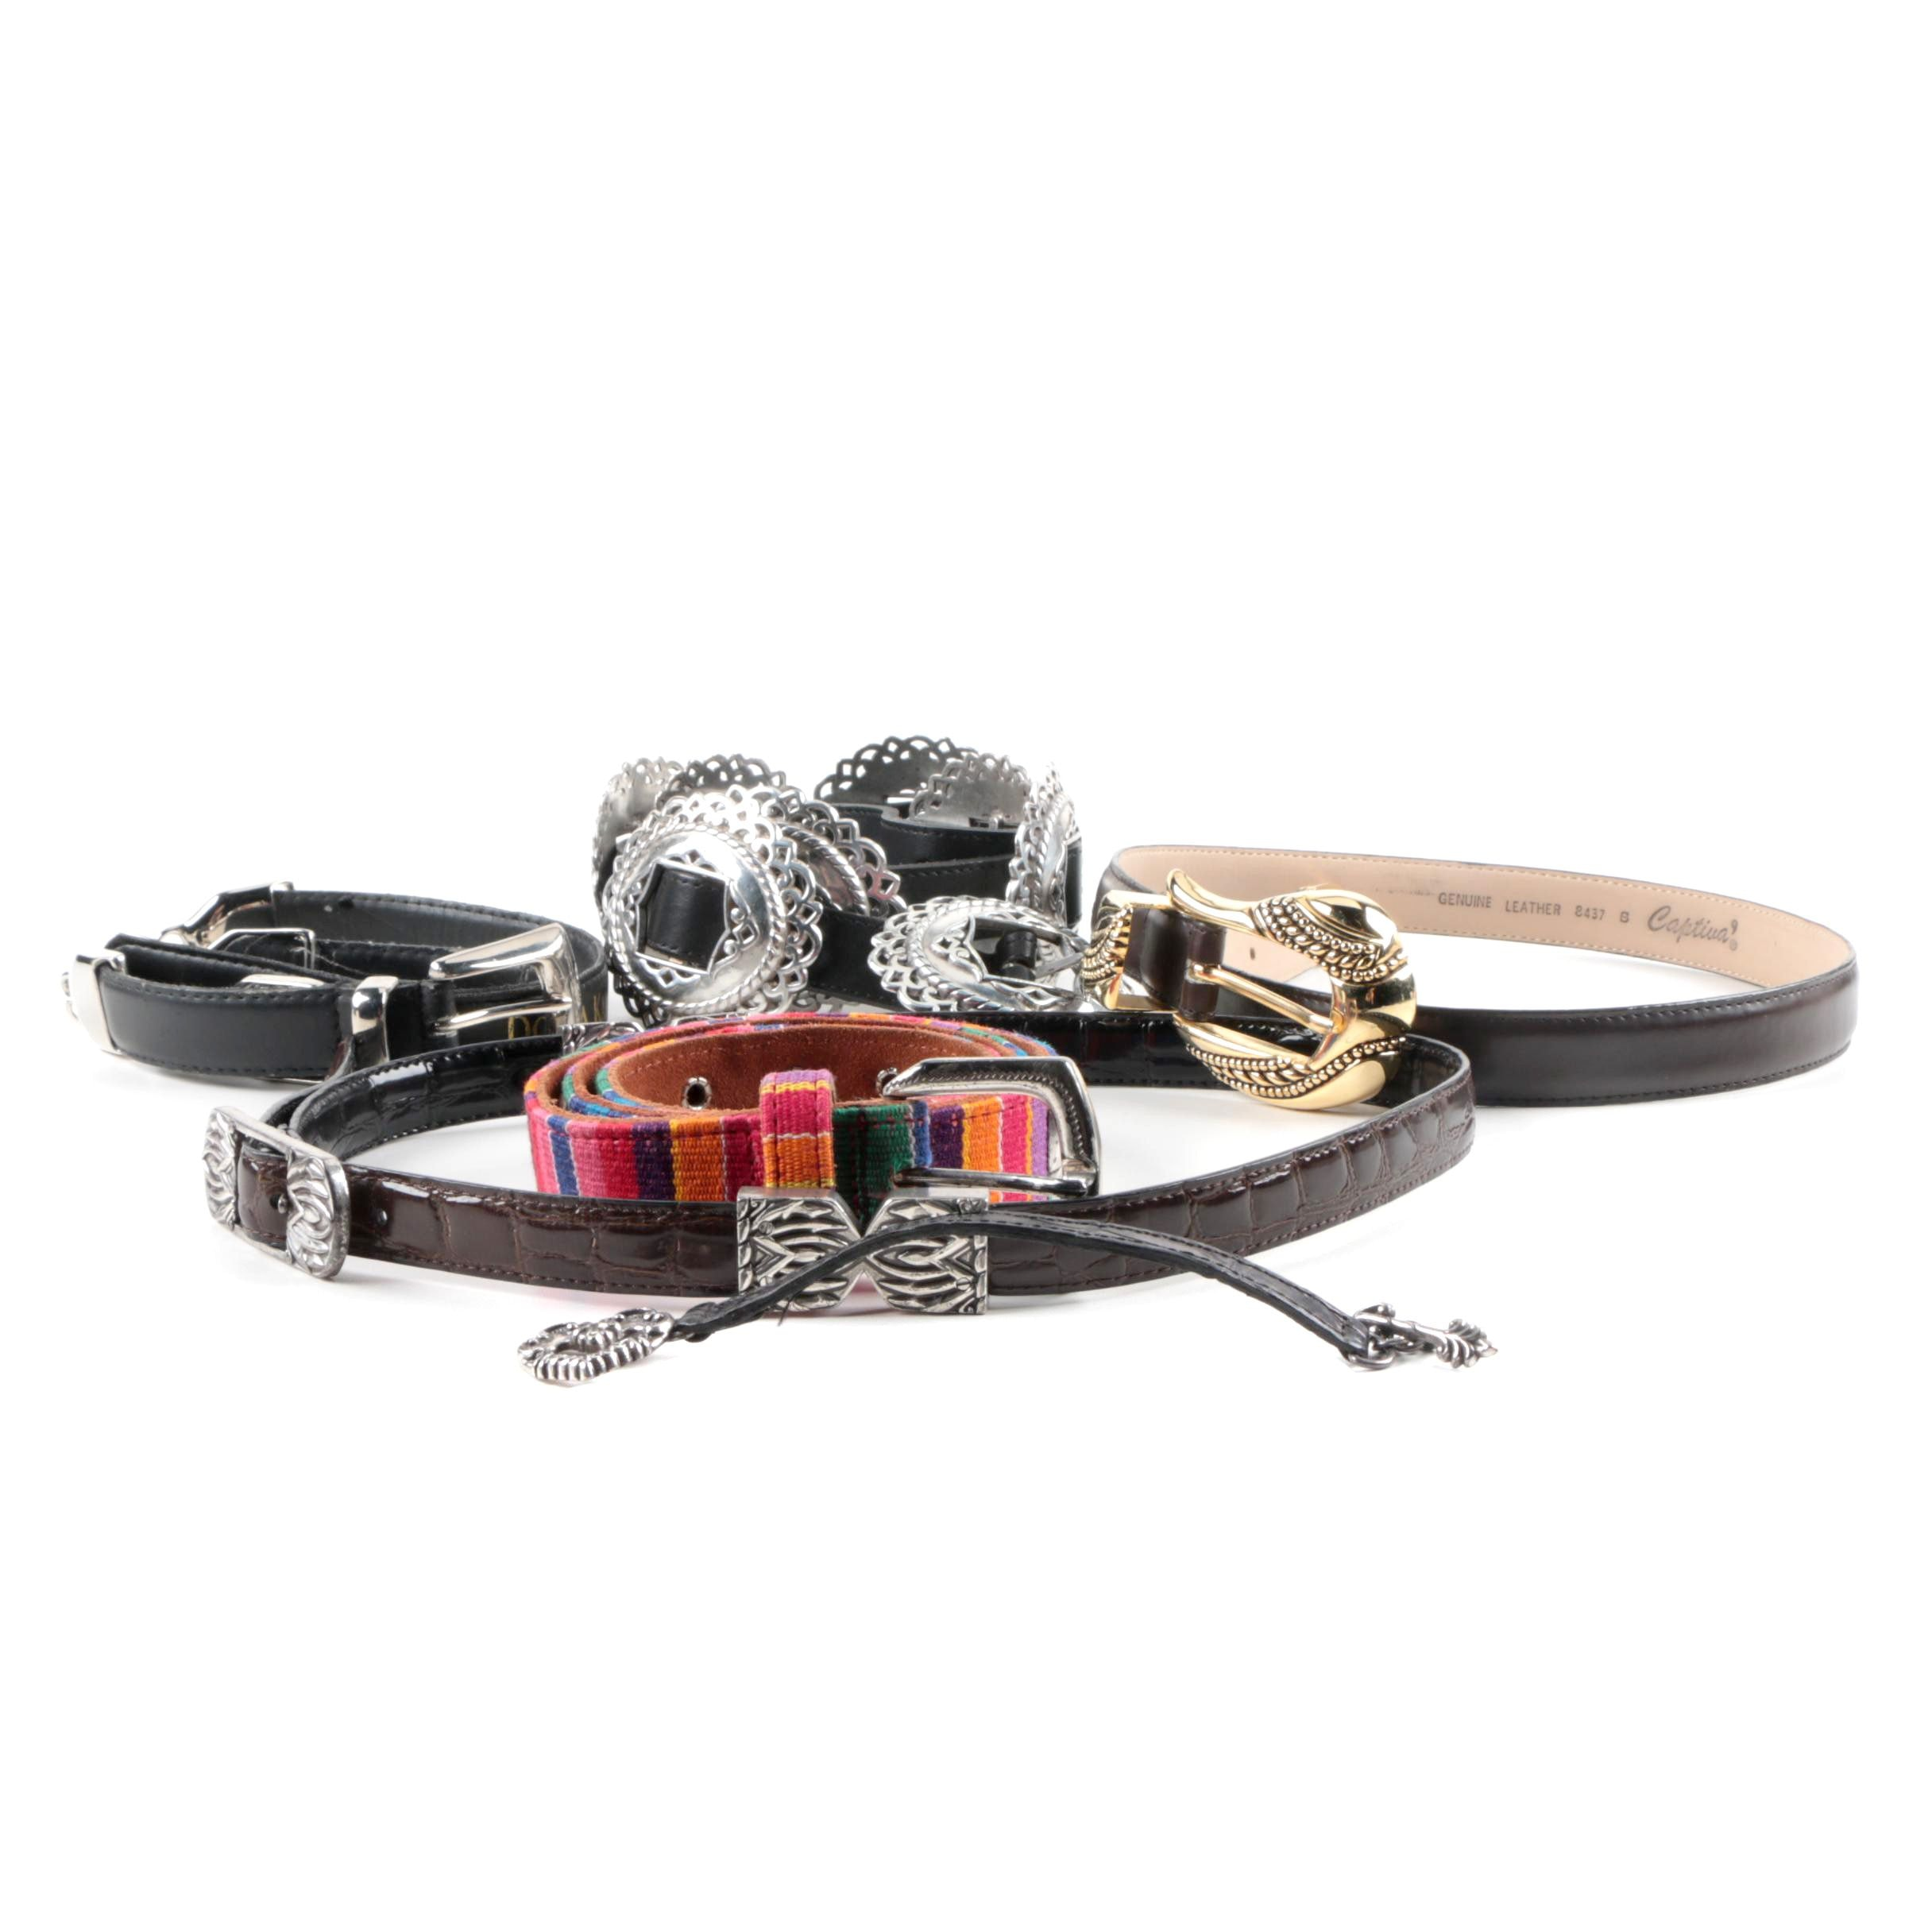 Women's Leather Belts and Bracelet Including Brighton